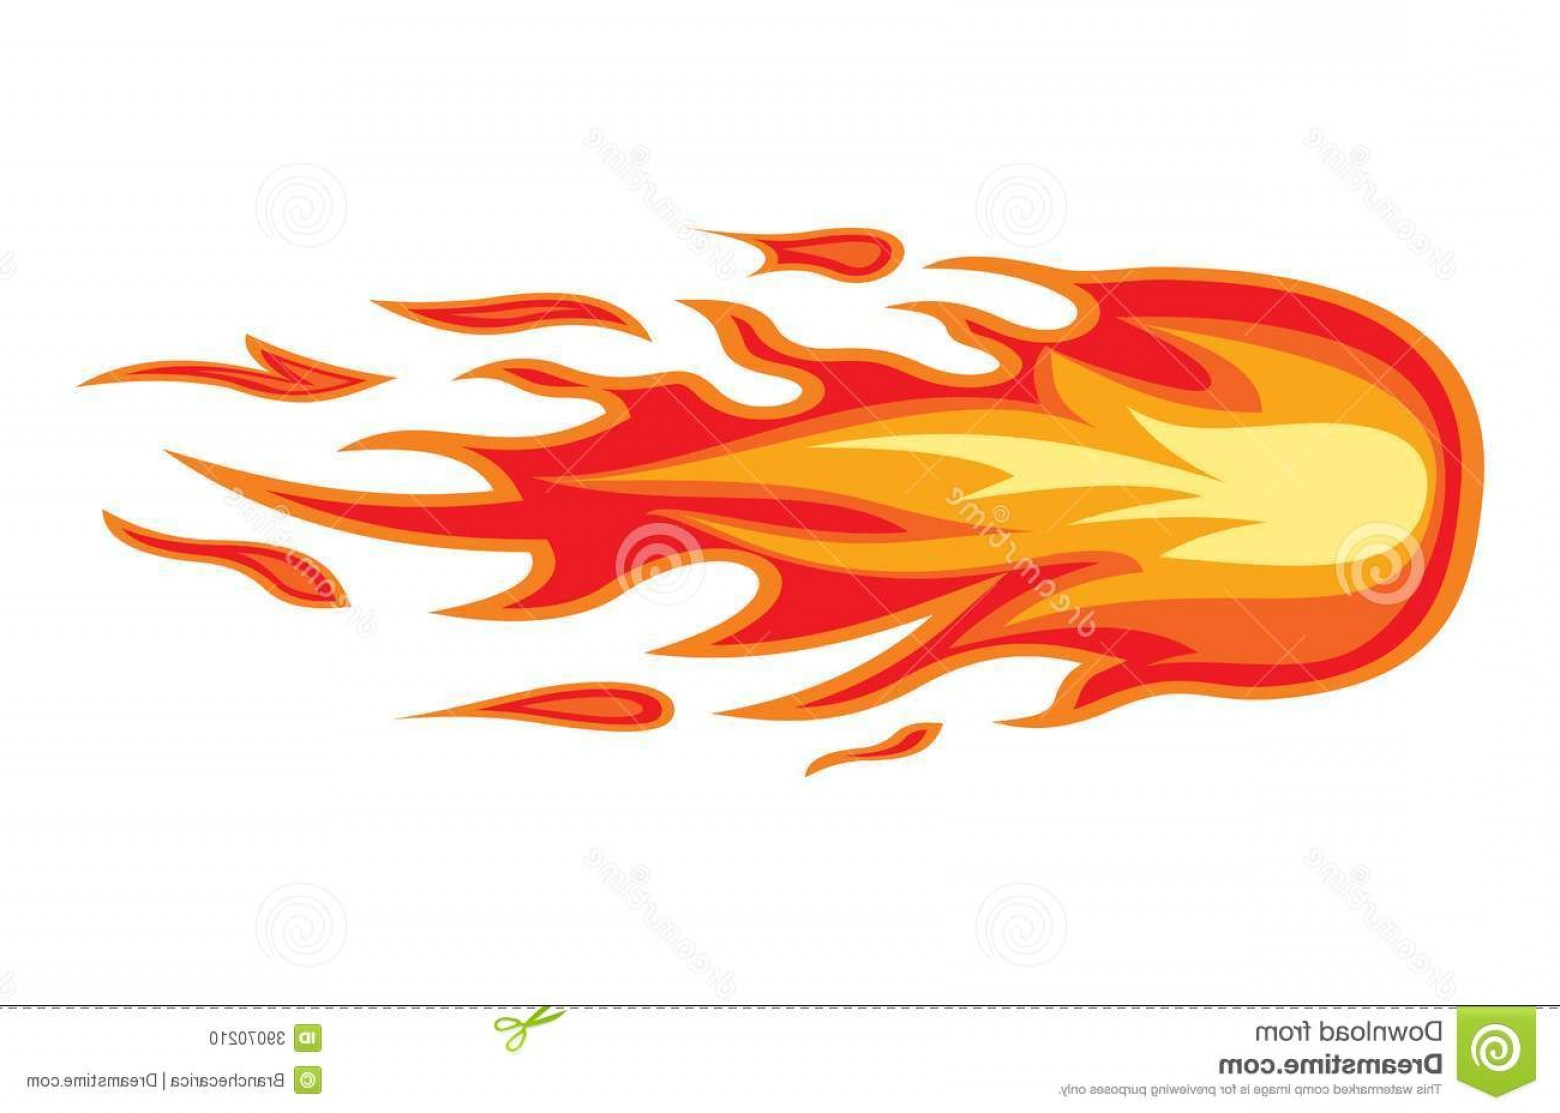 Fire Clip Art Vector: Stock Photo Fire Flame Vector Illustration Image